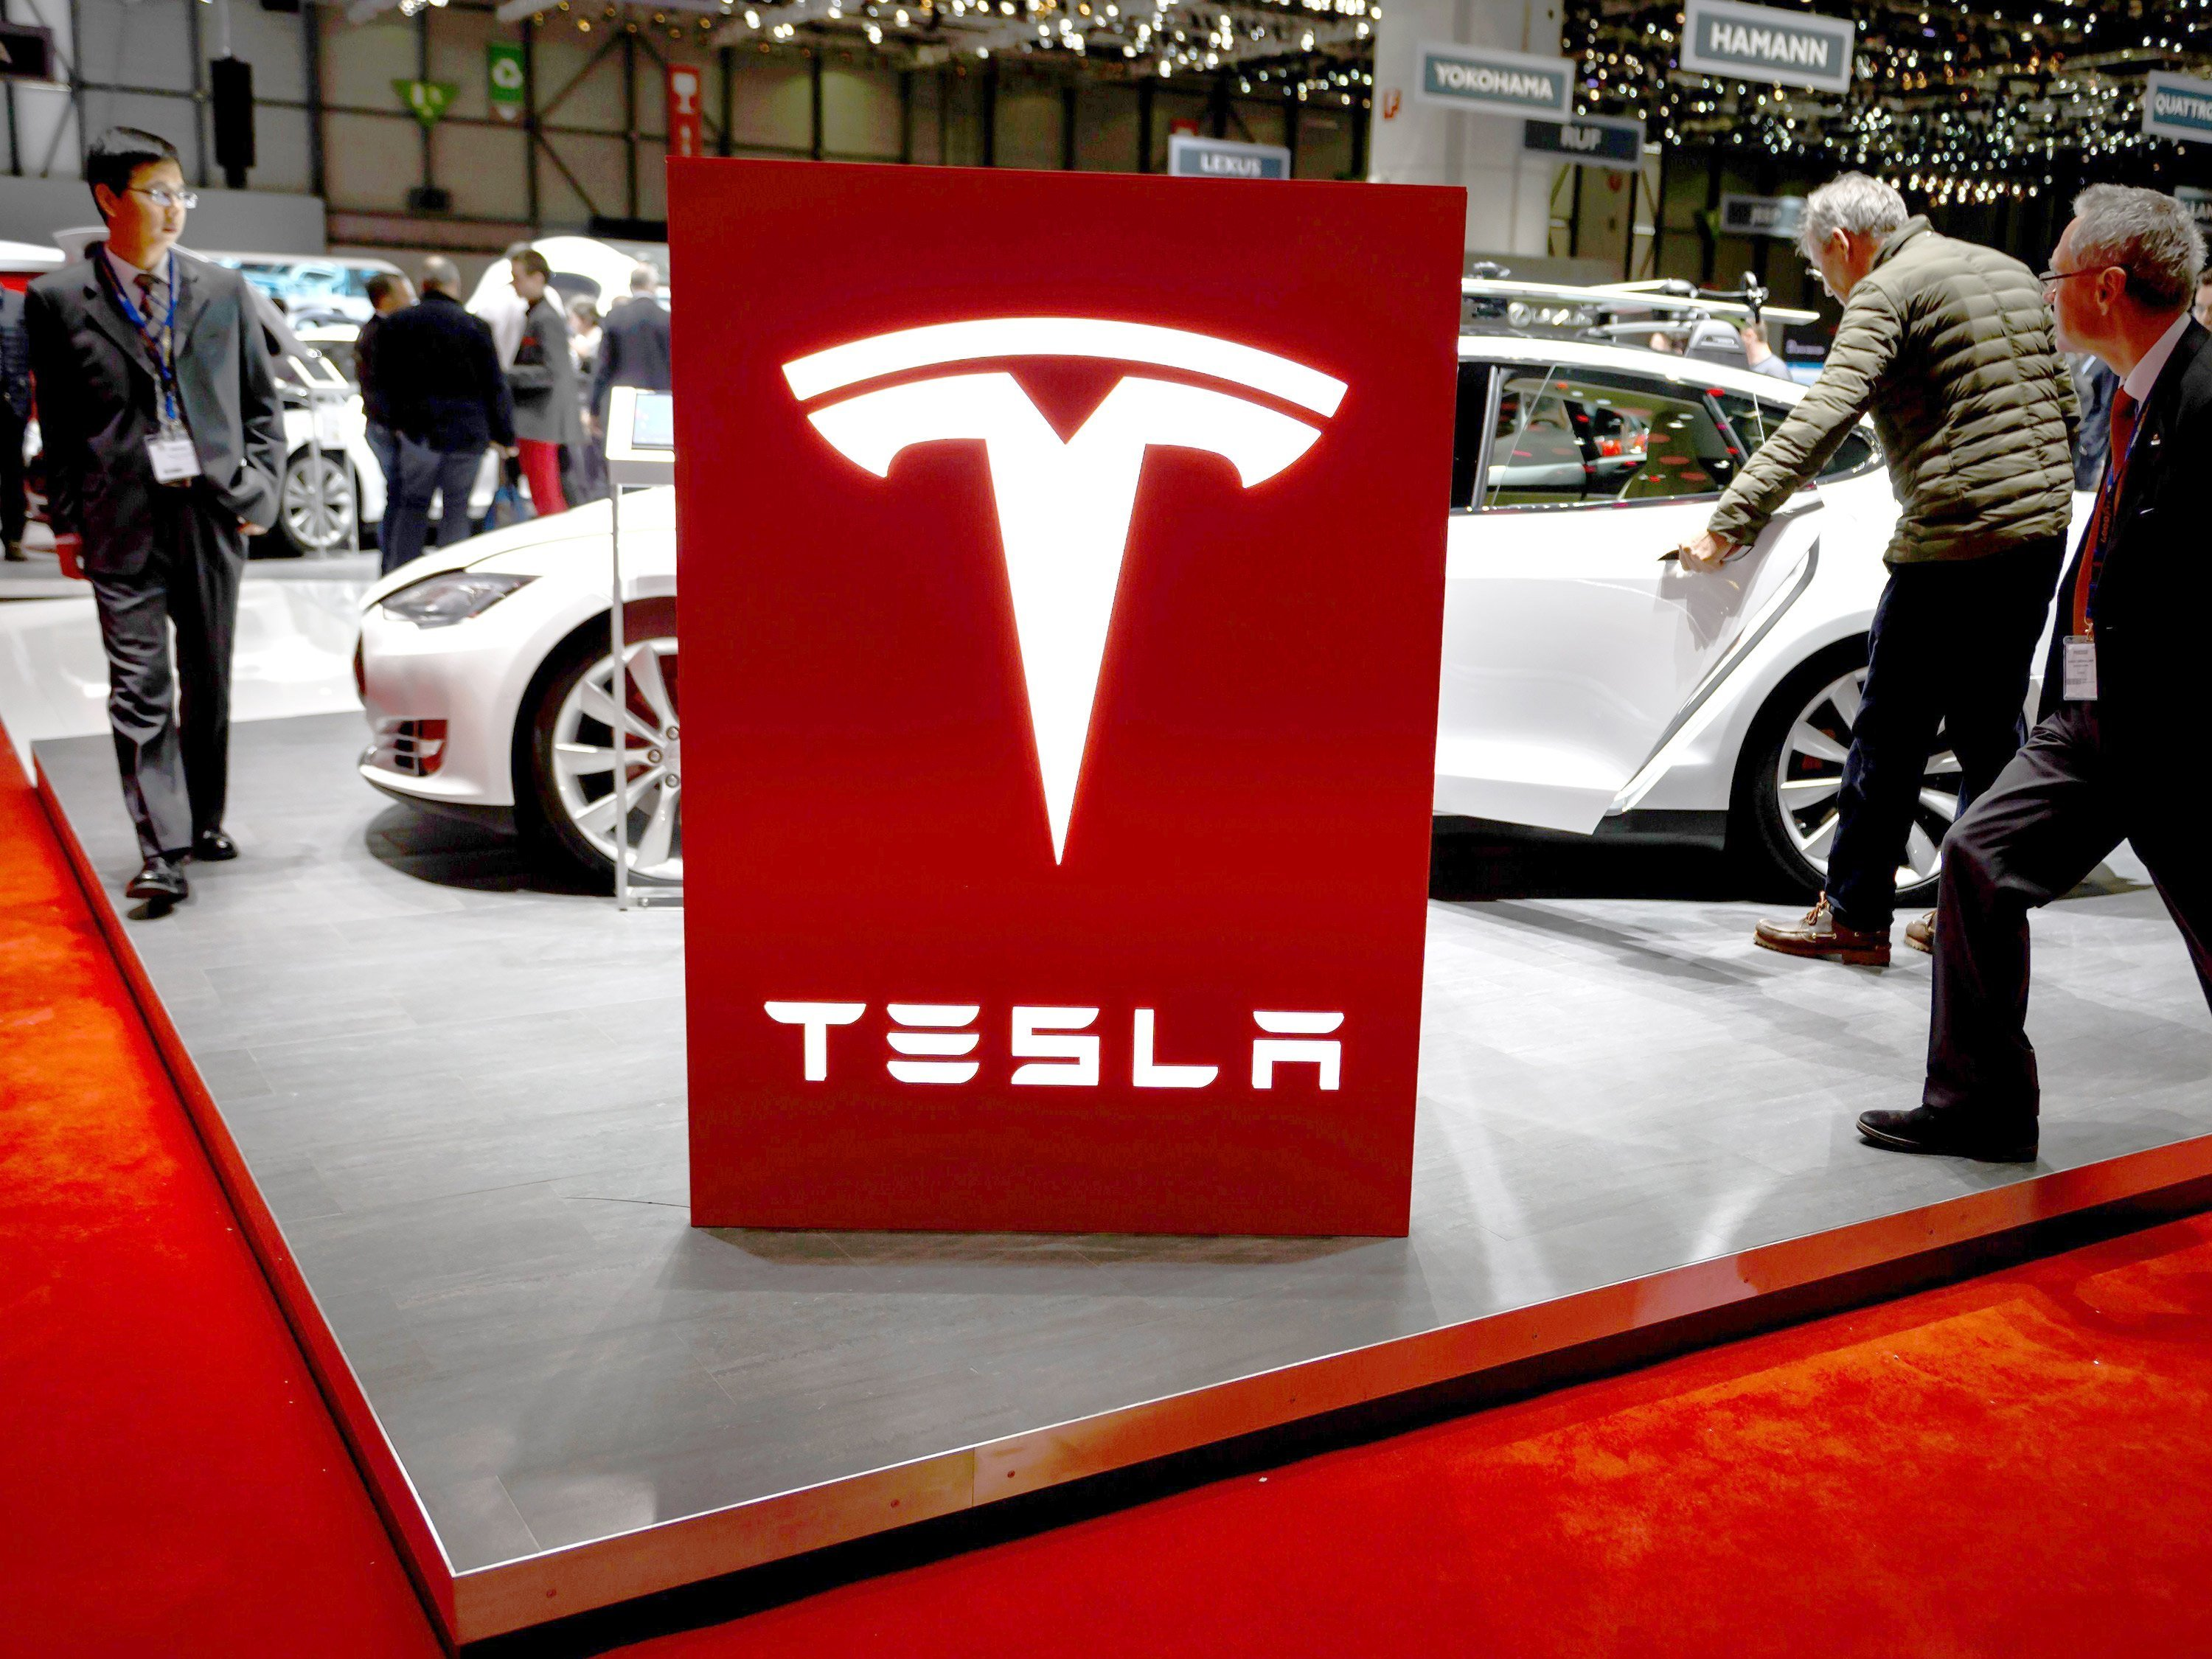 Cal/OSHA Reportedly Investigating Tesla Over Factory Safety